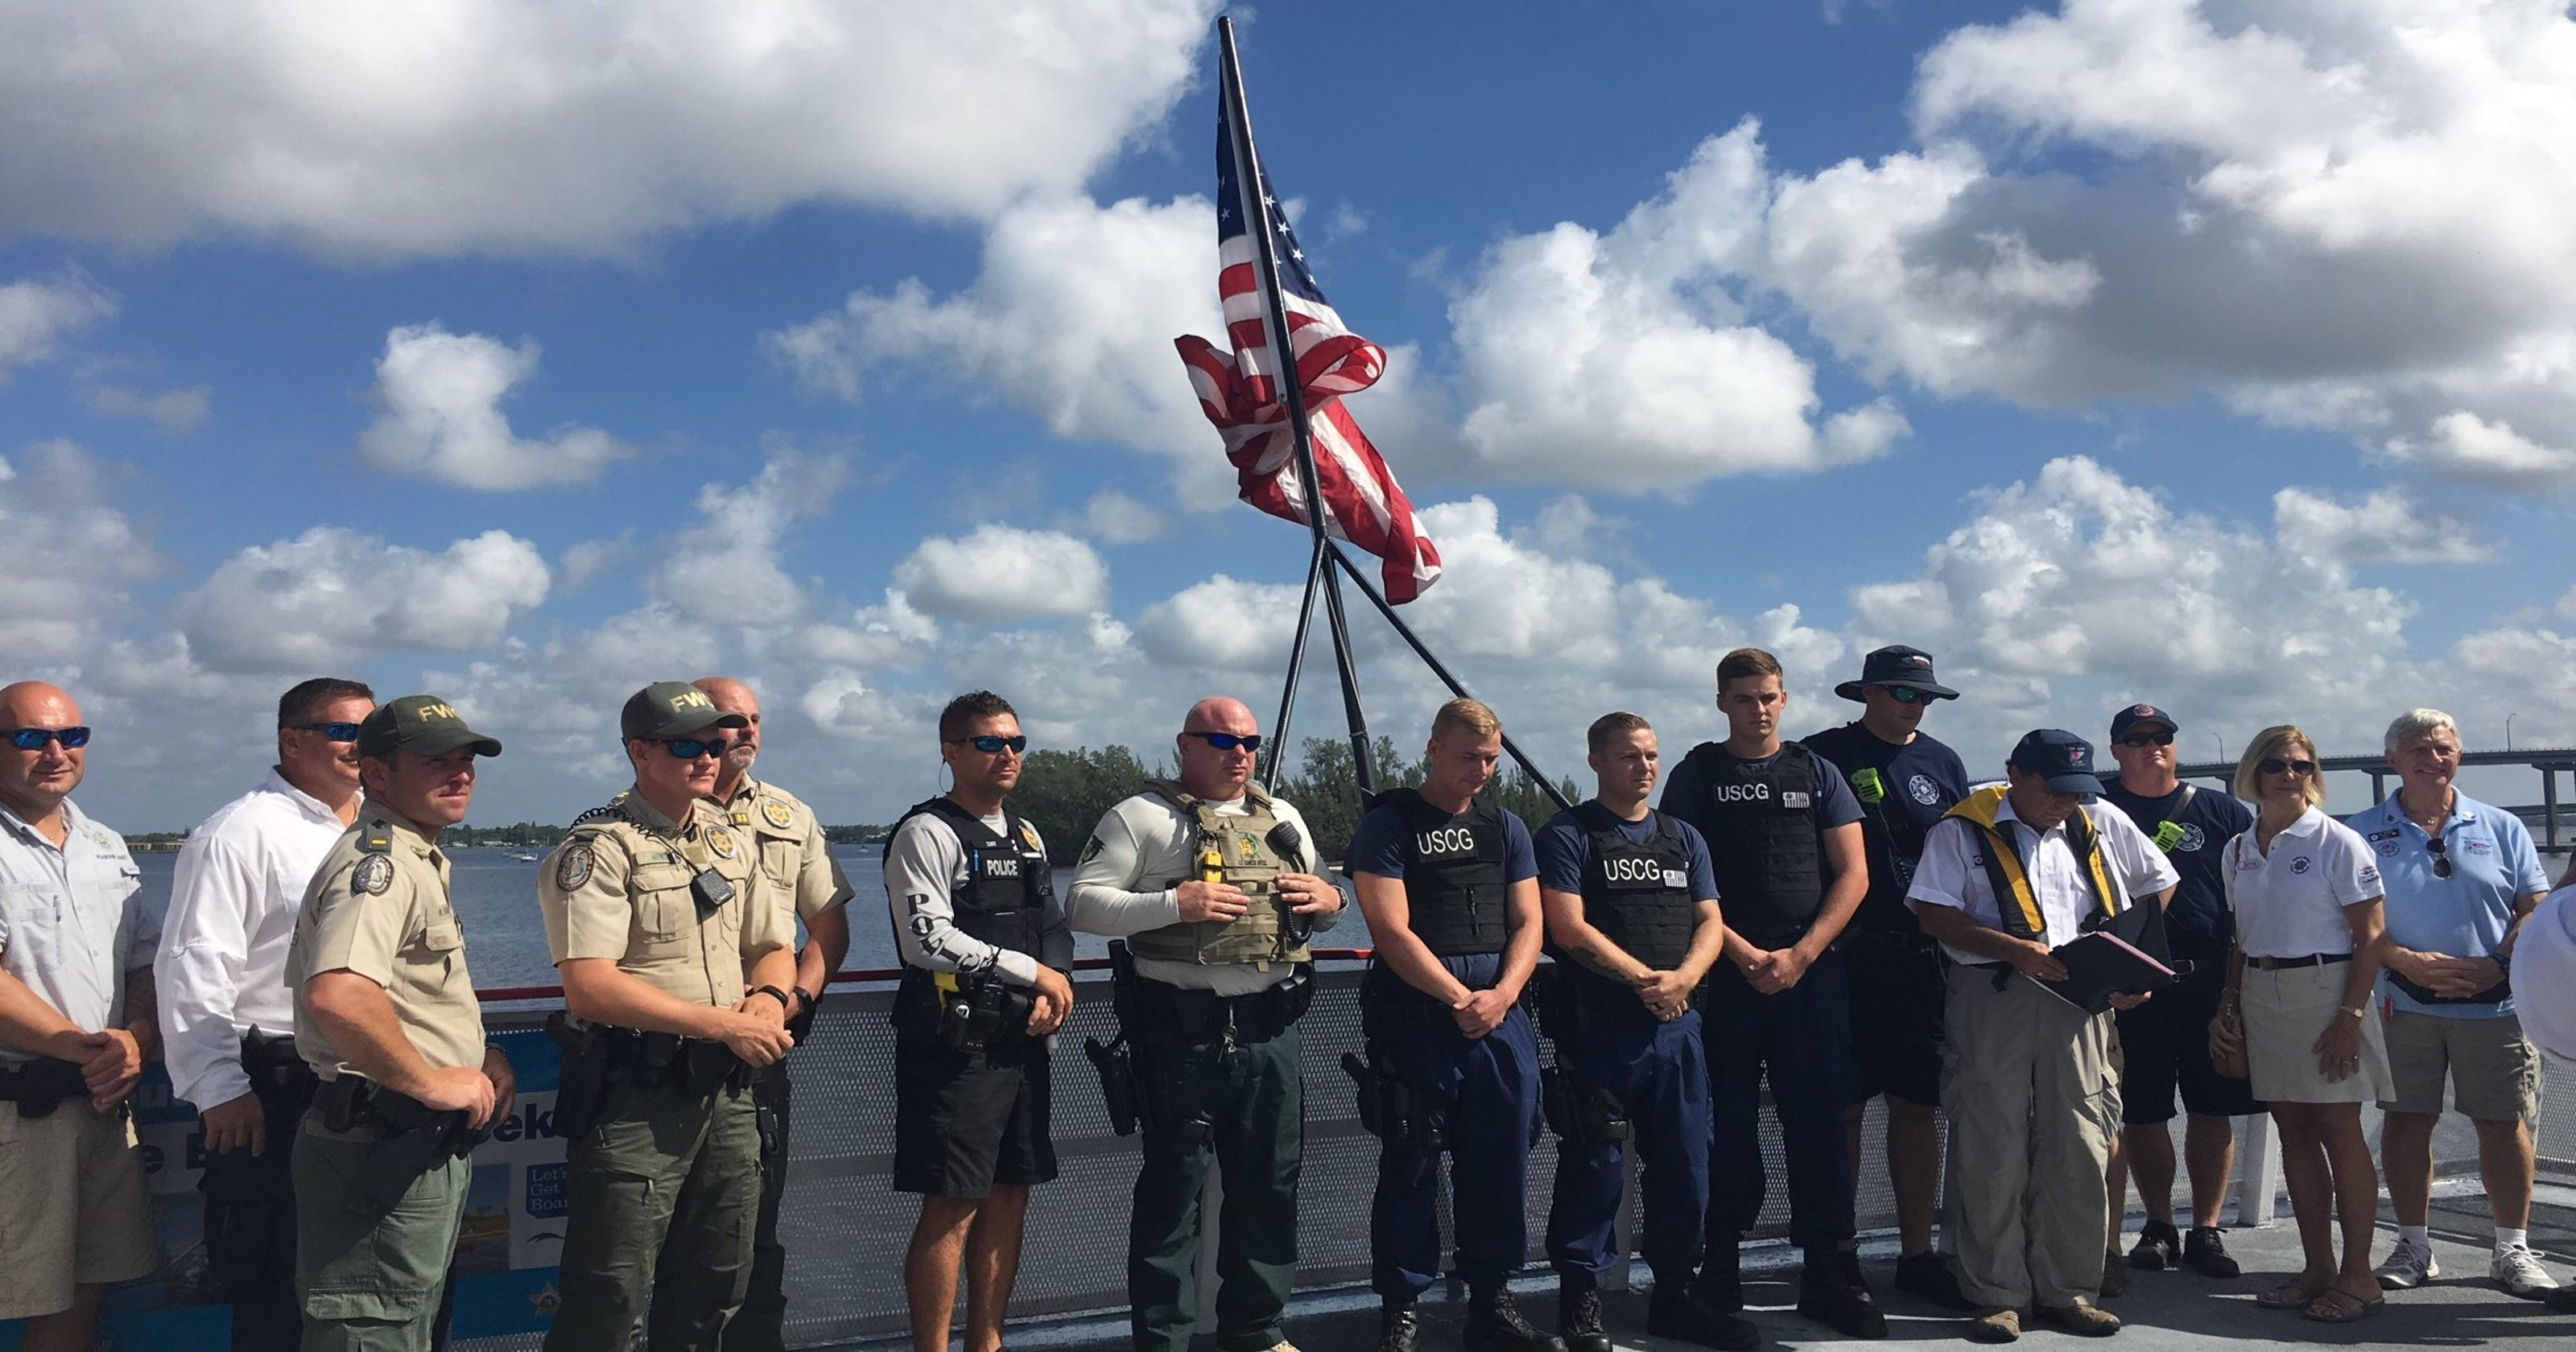 Florida boating safety: Lee County had the most boating fatalities